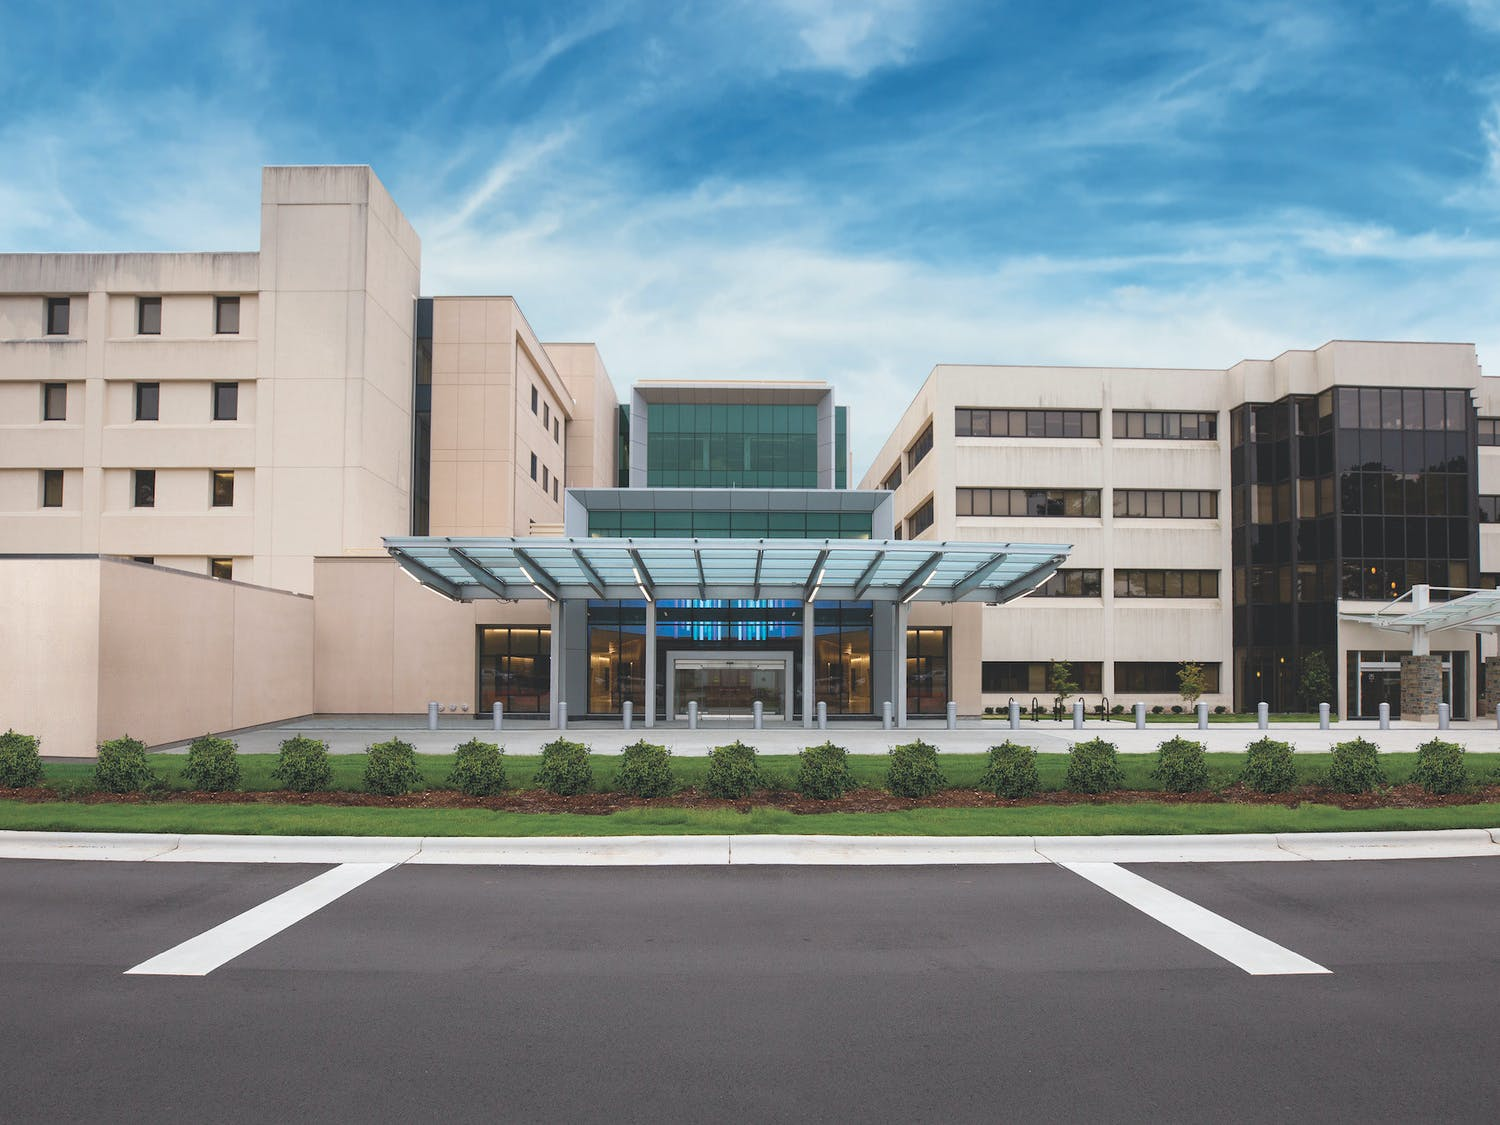 Duke Health recently spent $196 million to expand their Raleigh hospital by another 210,000 square feet.